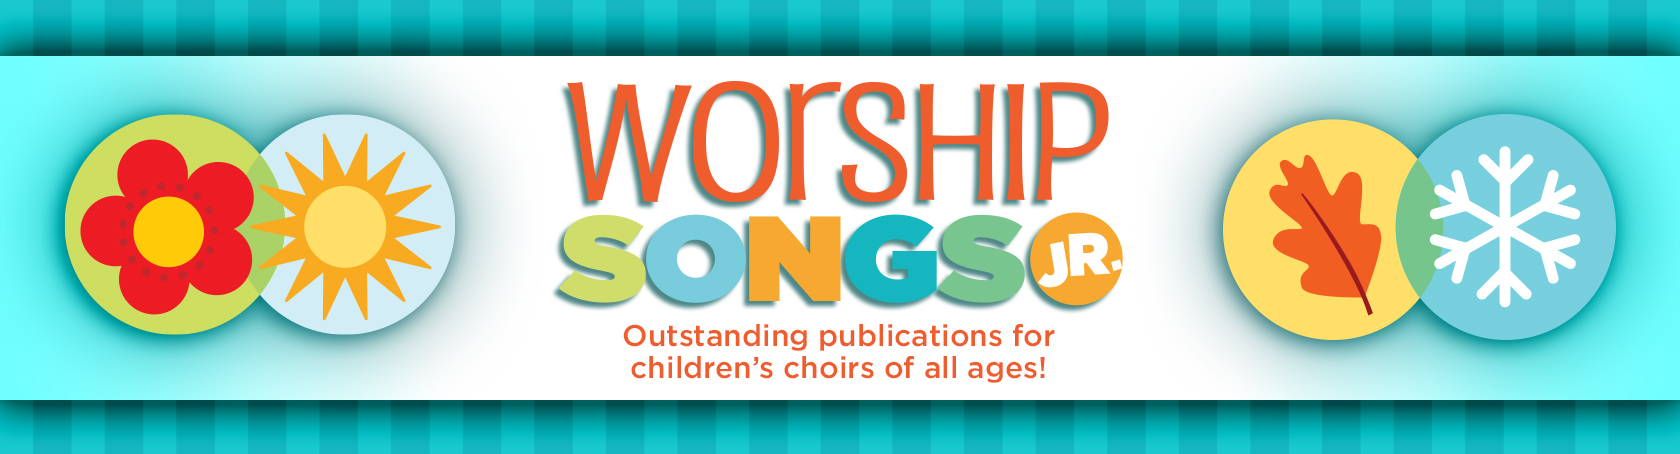 Worship Songs Junior - Outstanding publications for children's choirs of all ages